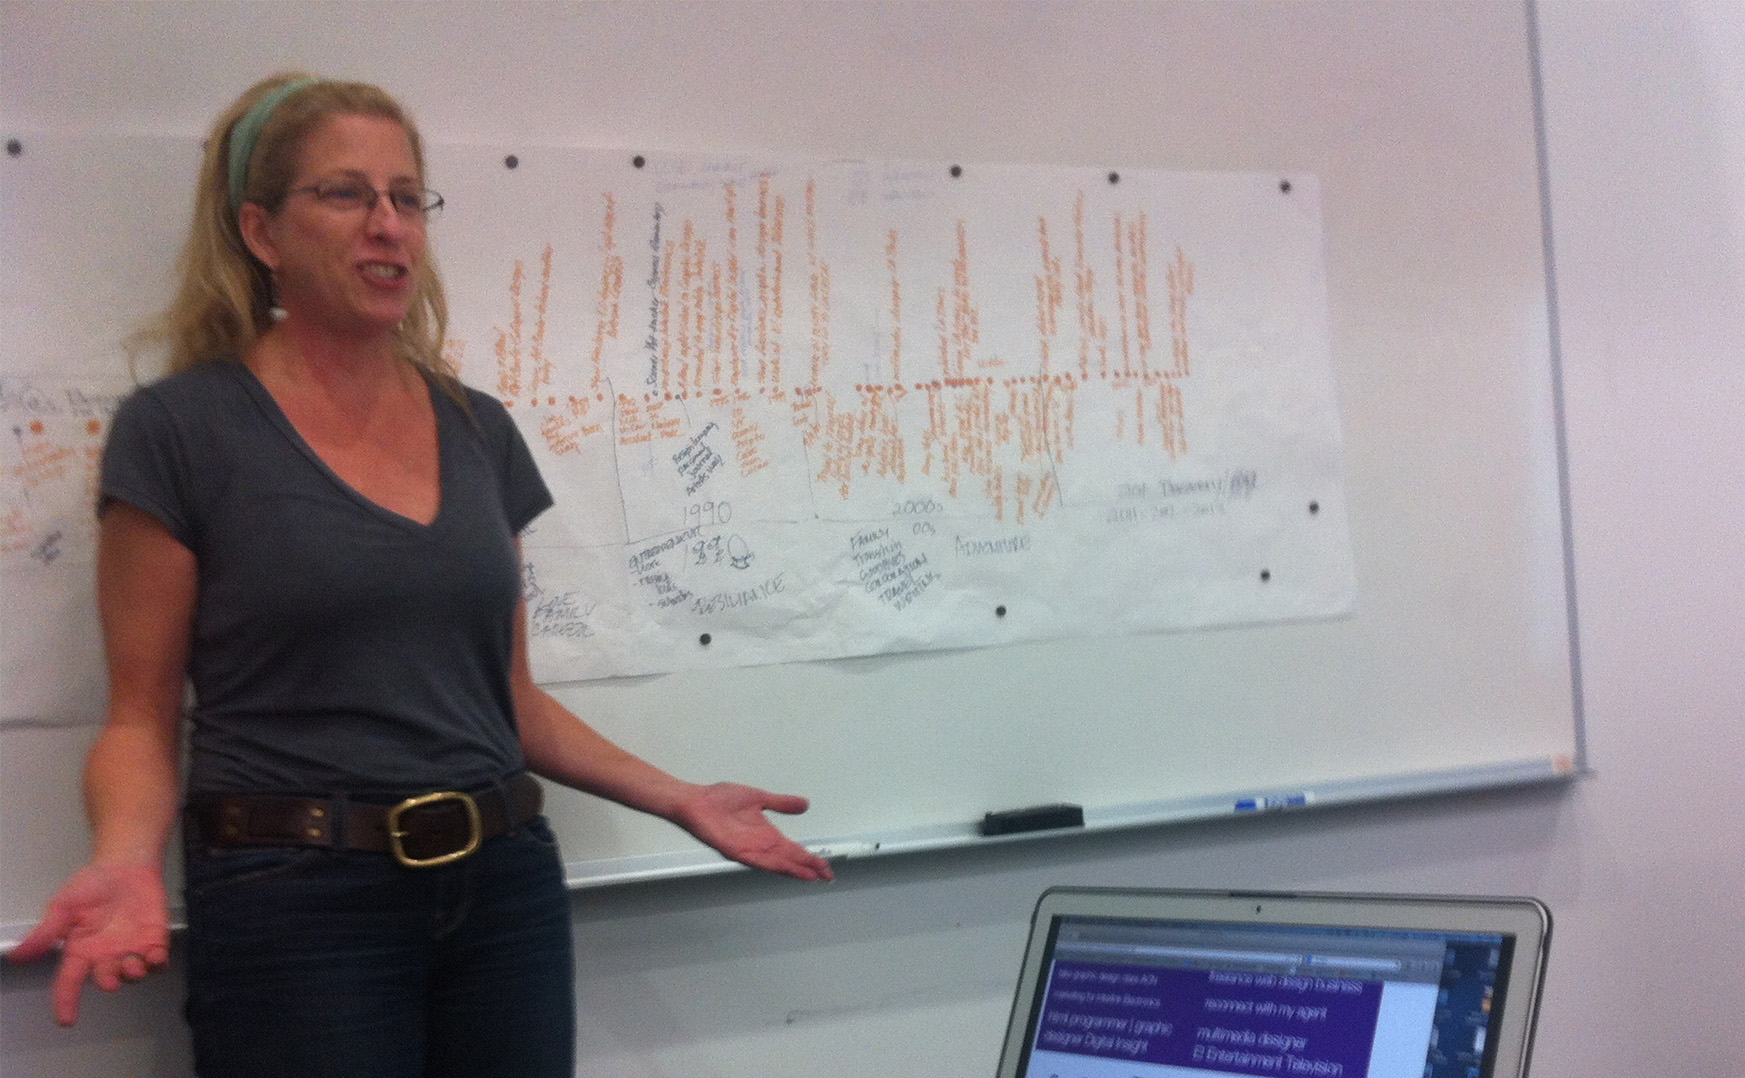 Laura Elliott discussing her Timeline assignment in class in 2013.